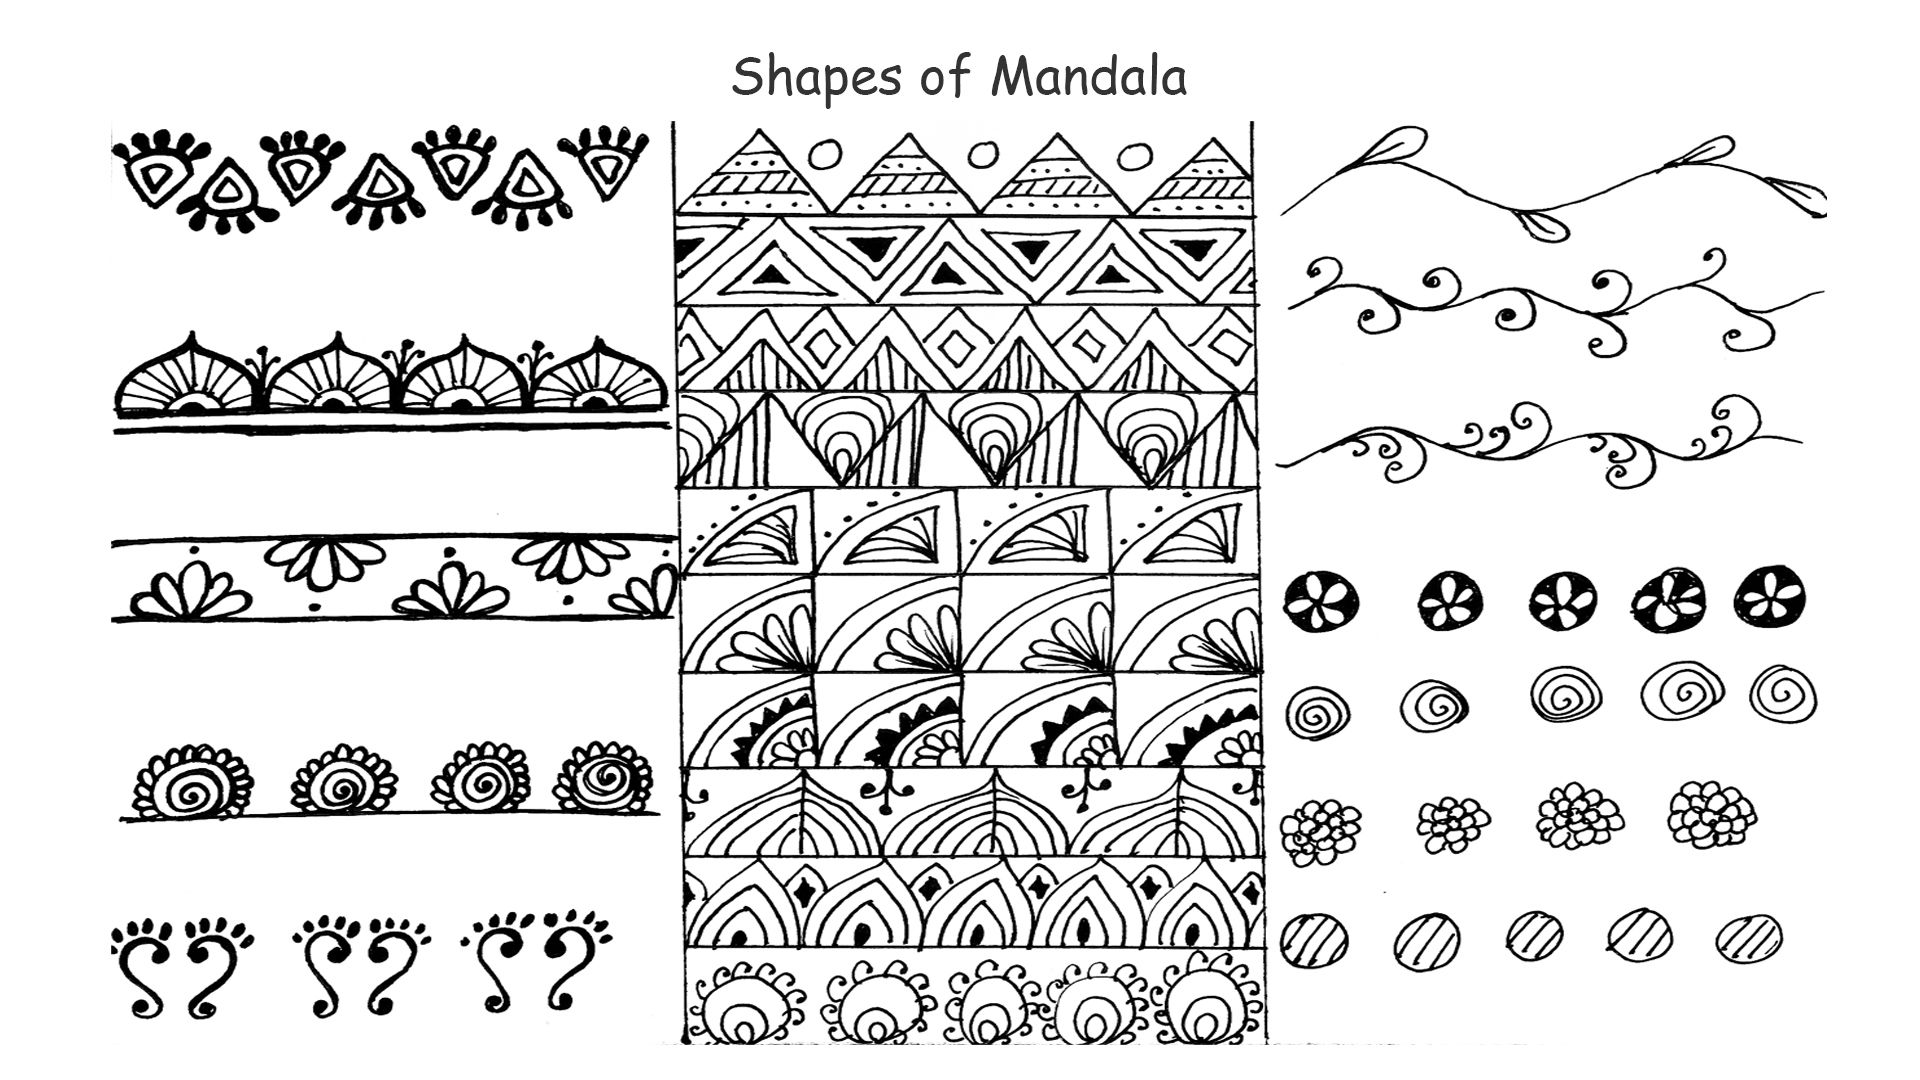 How To Draw Mandala Basic Shapes For Beginner Step By Step